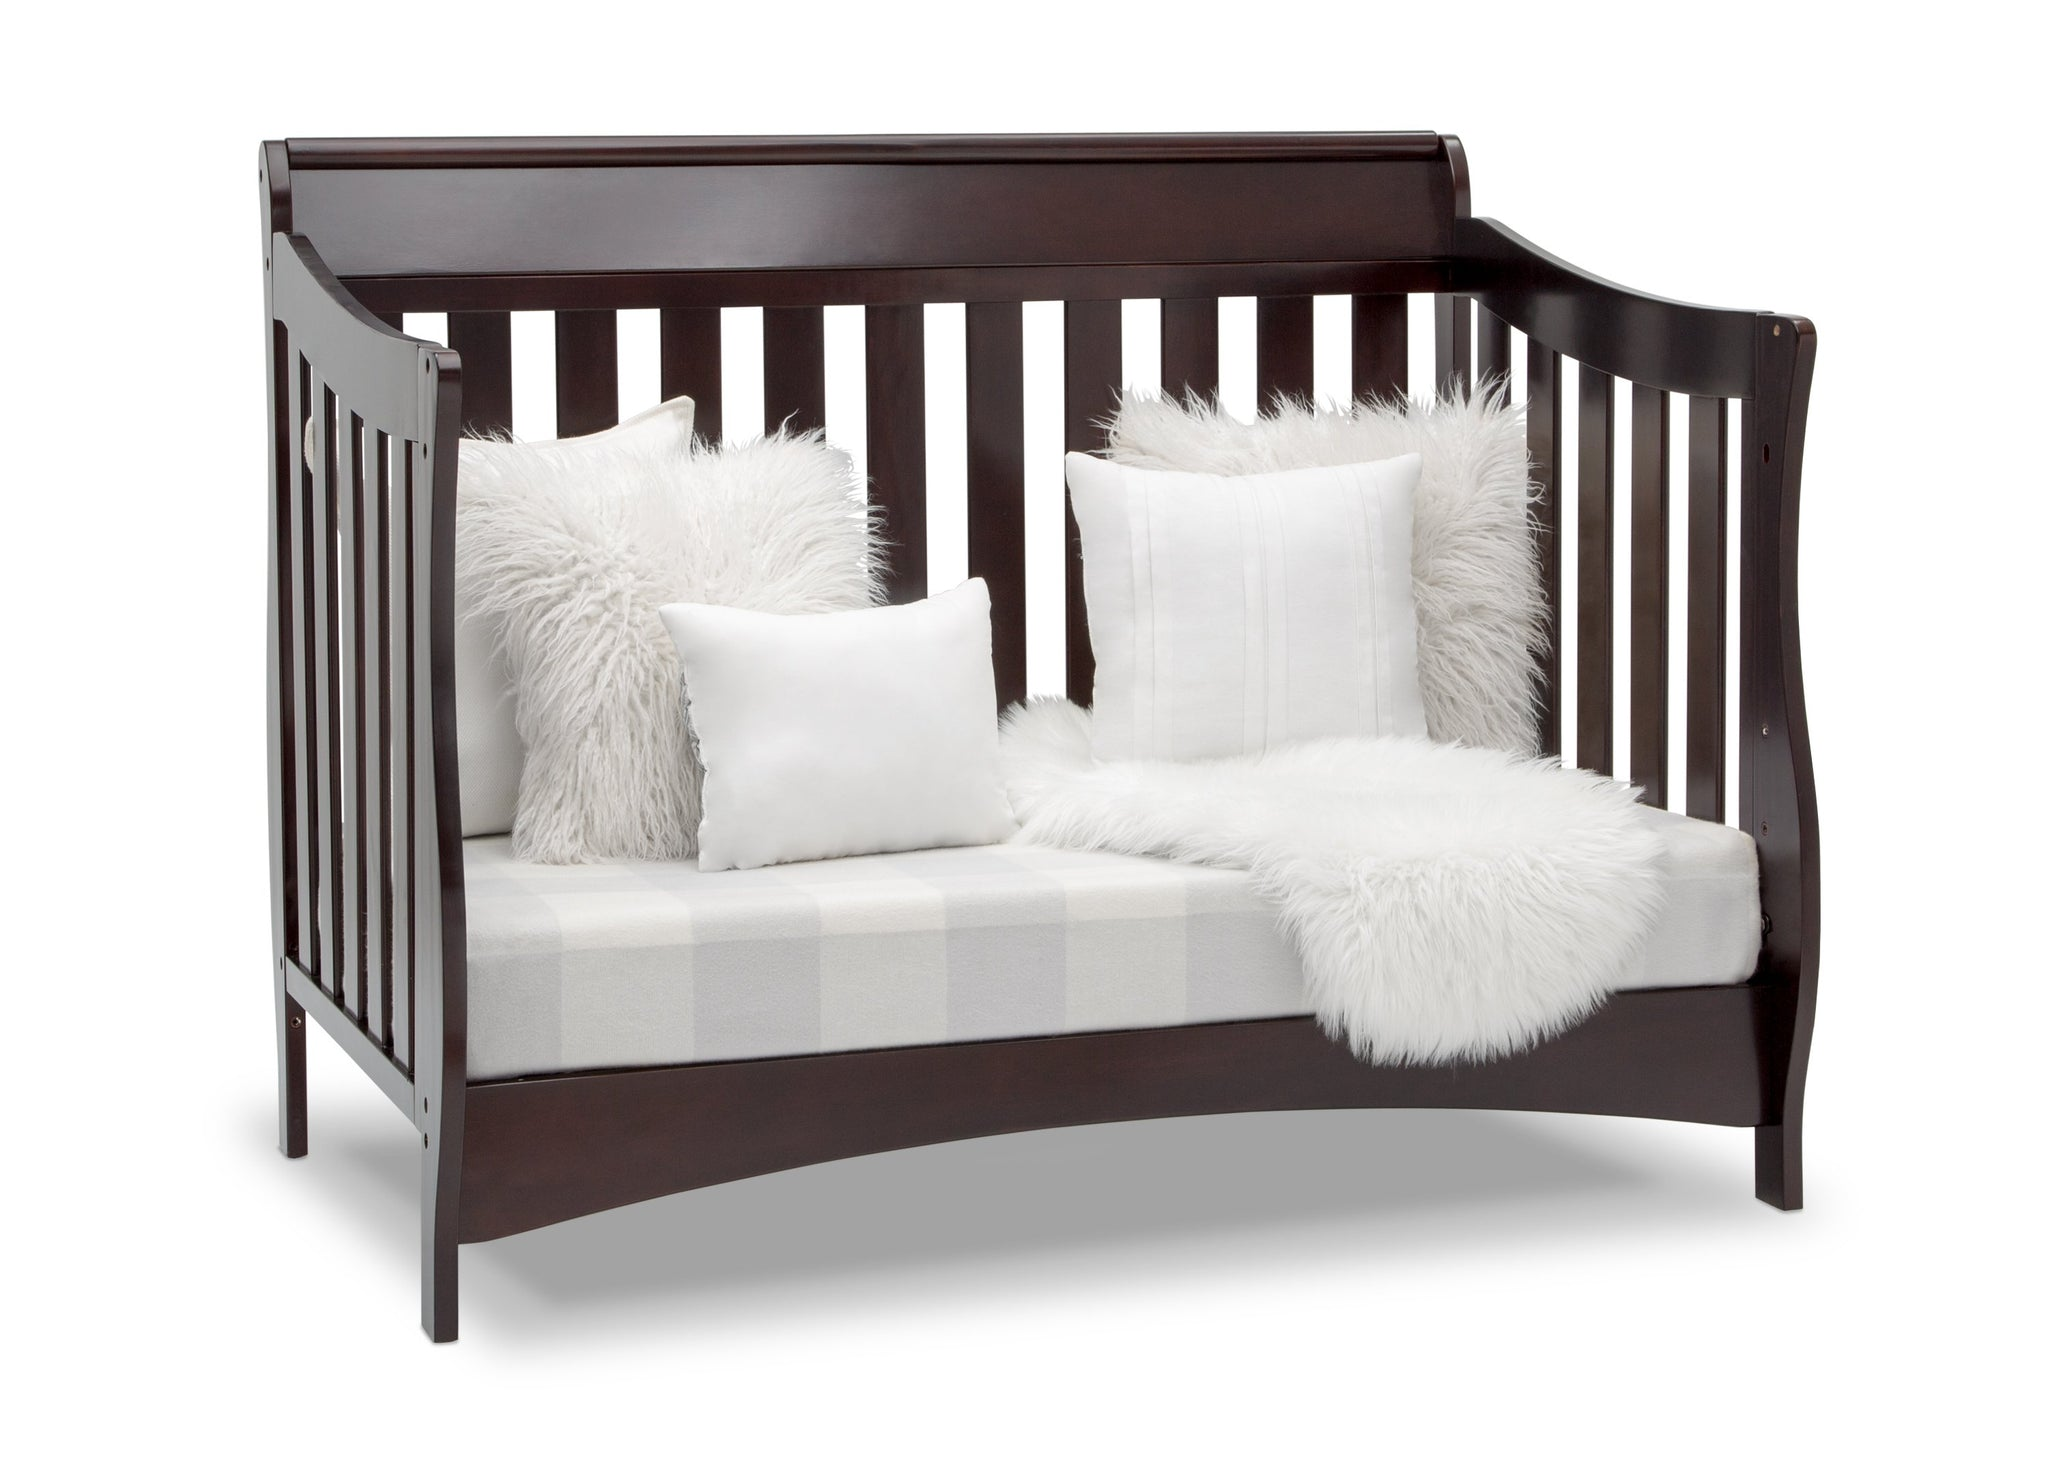 Delta Children Dark Chocolate (207) Bentley S Series Deluxe 6-in-1 Convertible Crib, Right Sofa Silo View